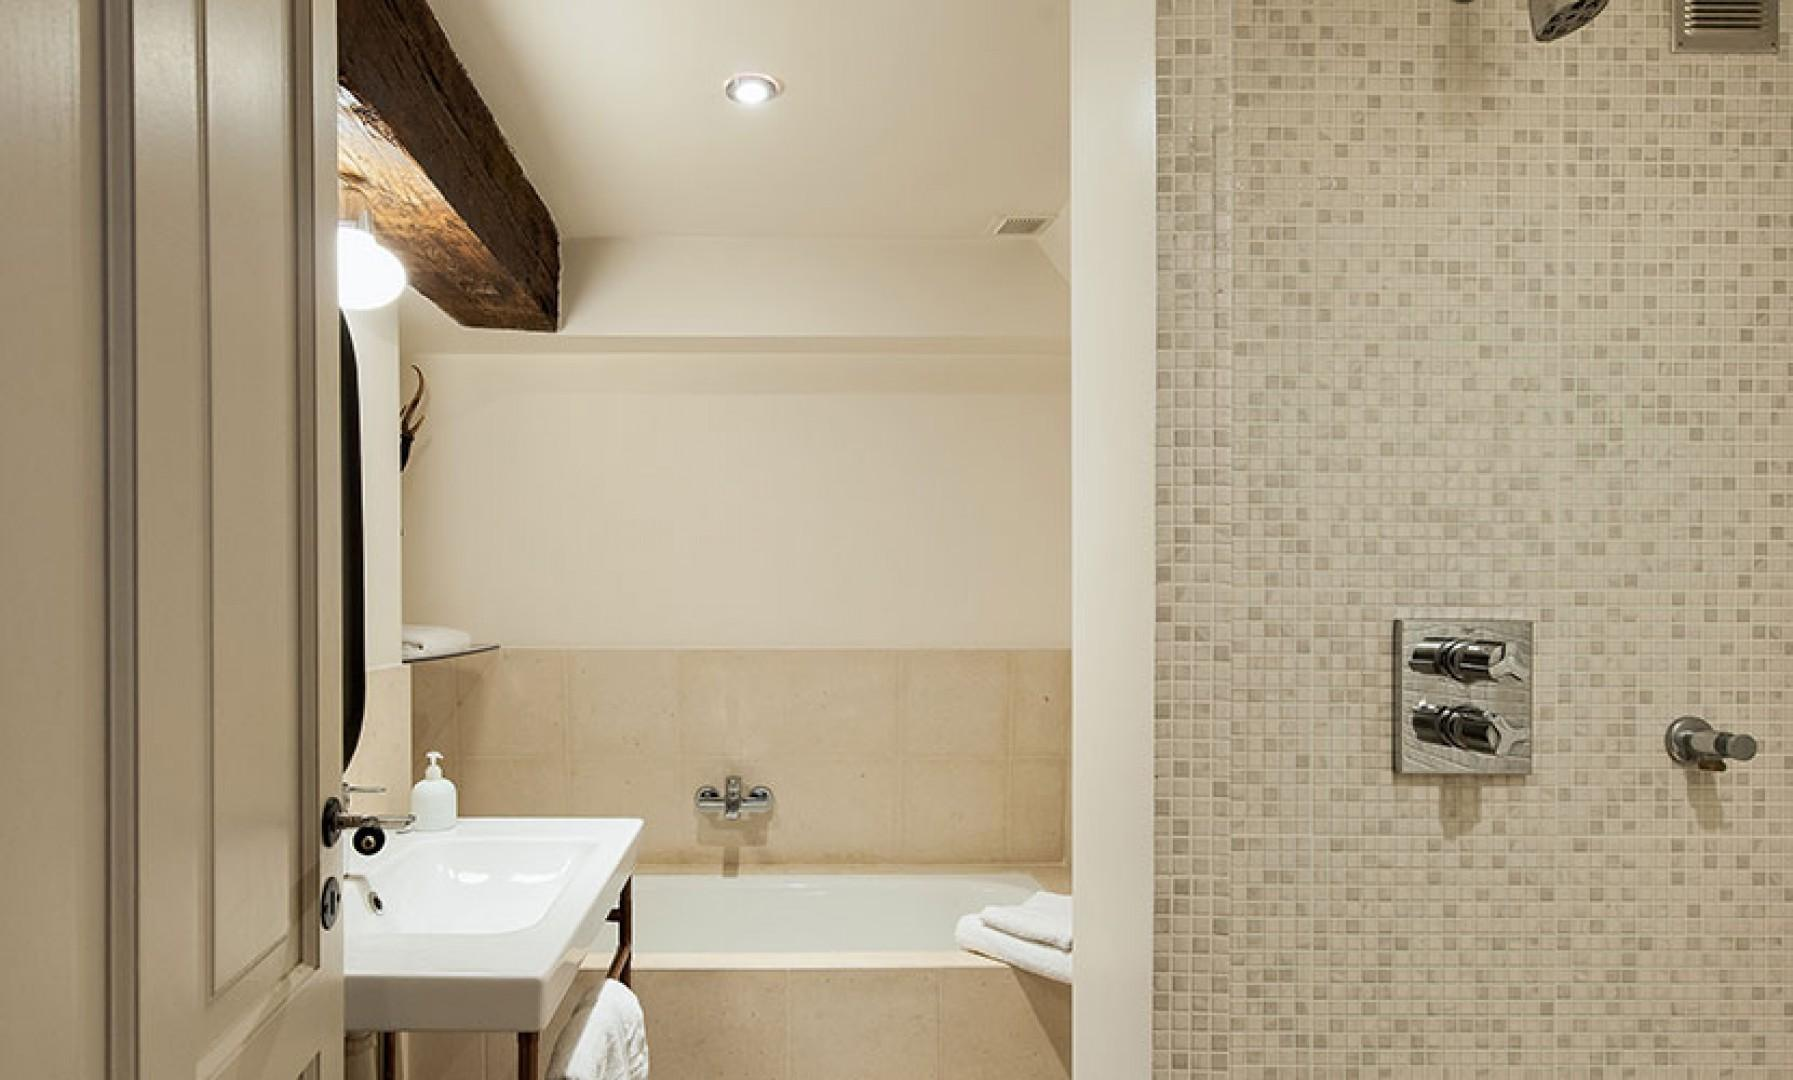 Modern conveniences mix with original features in the bathroom.